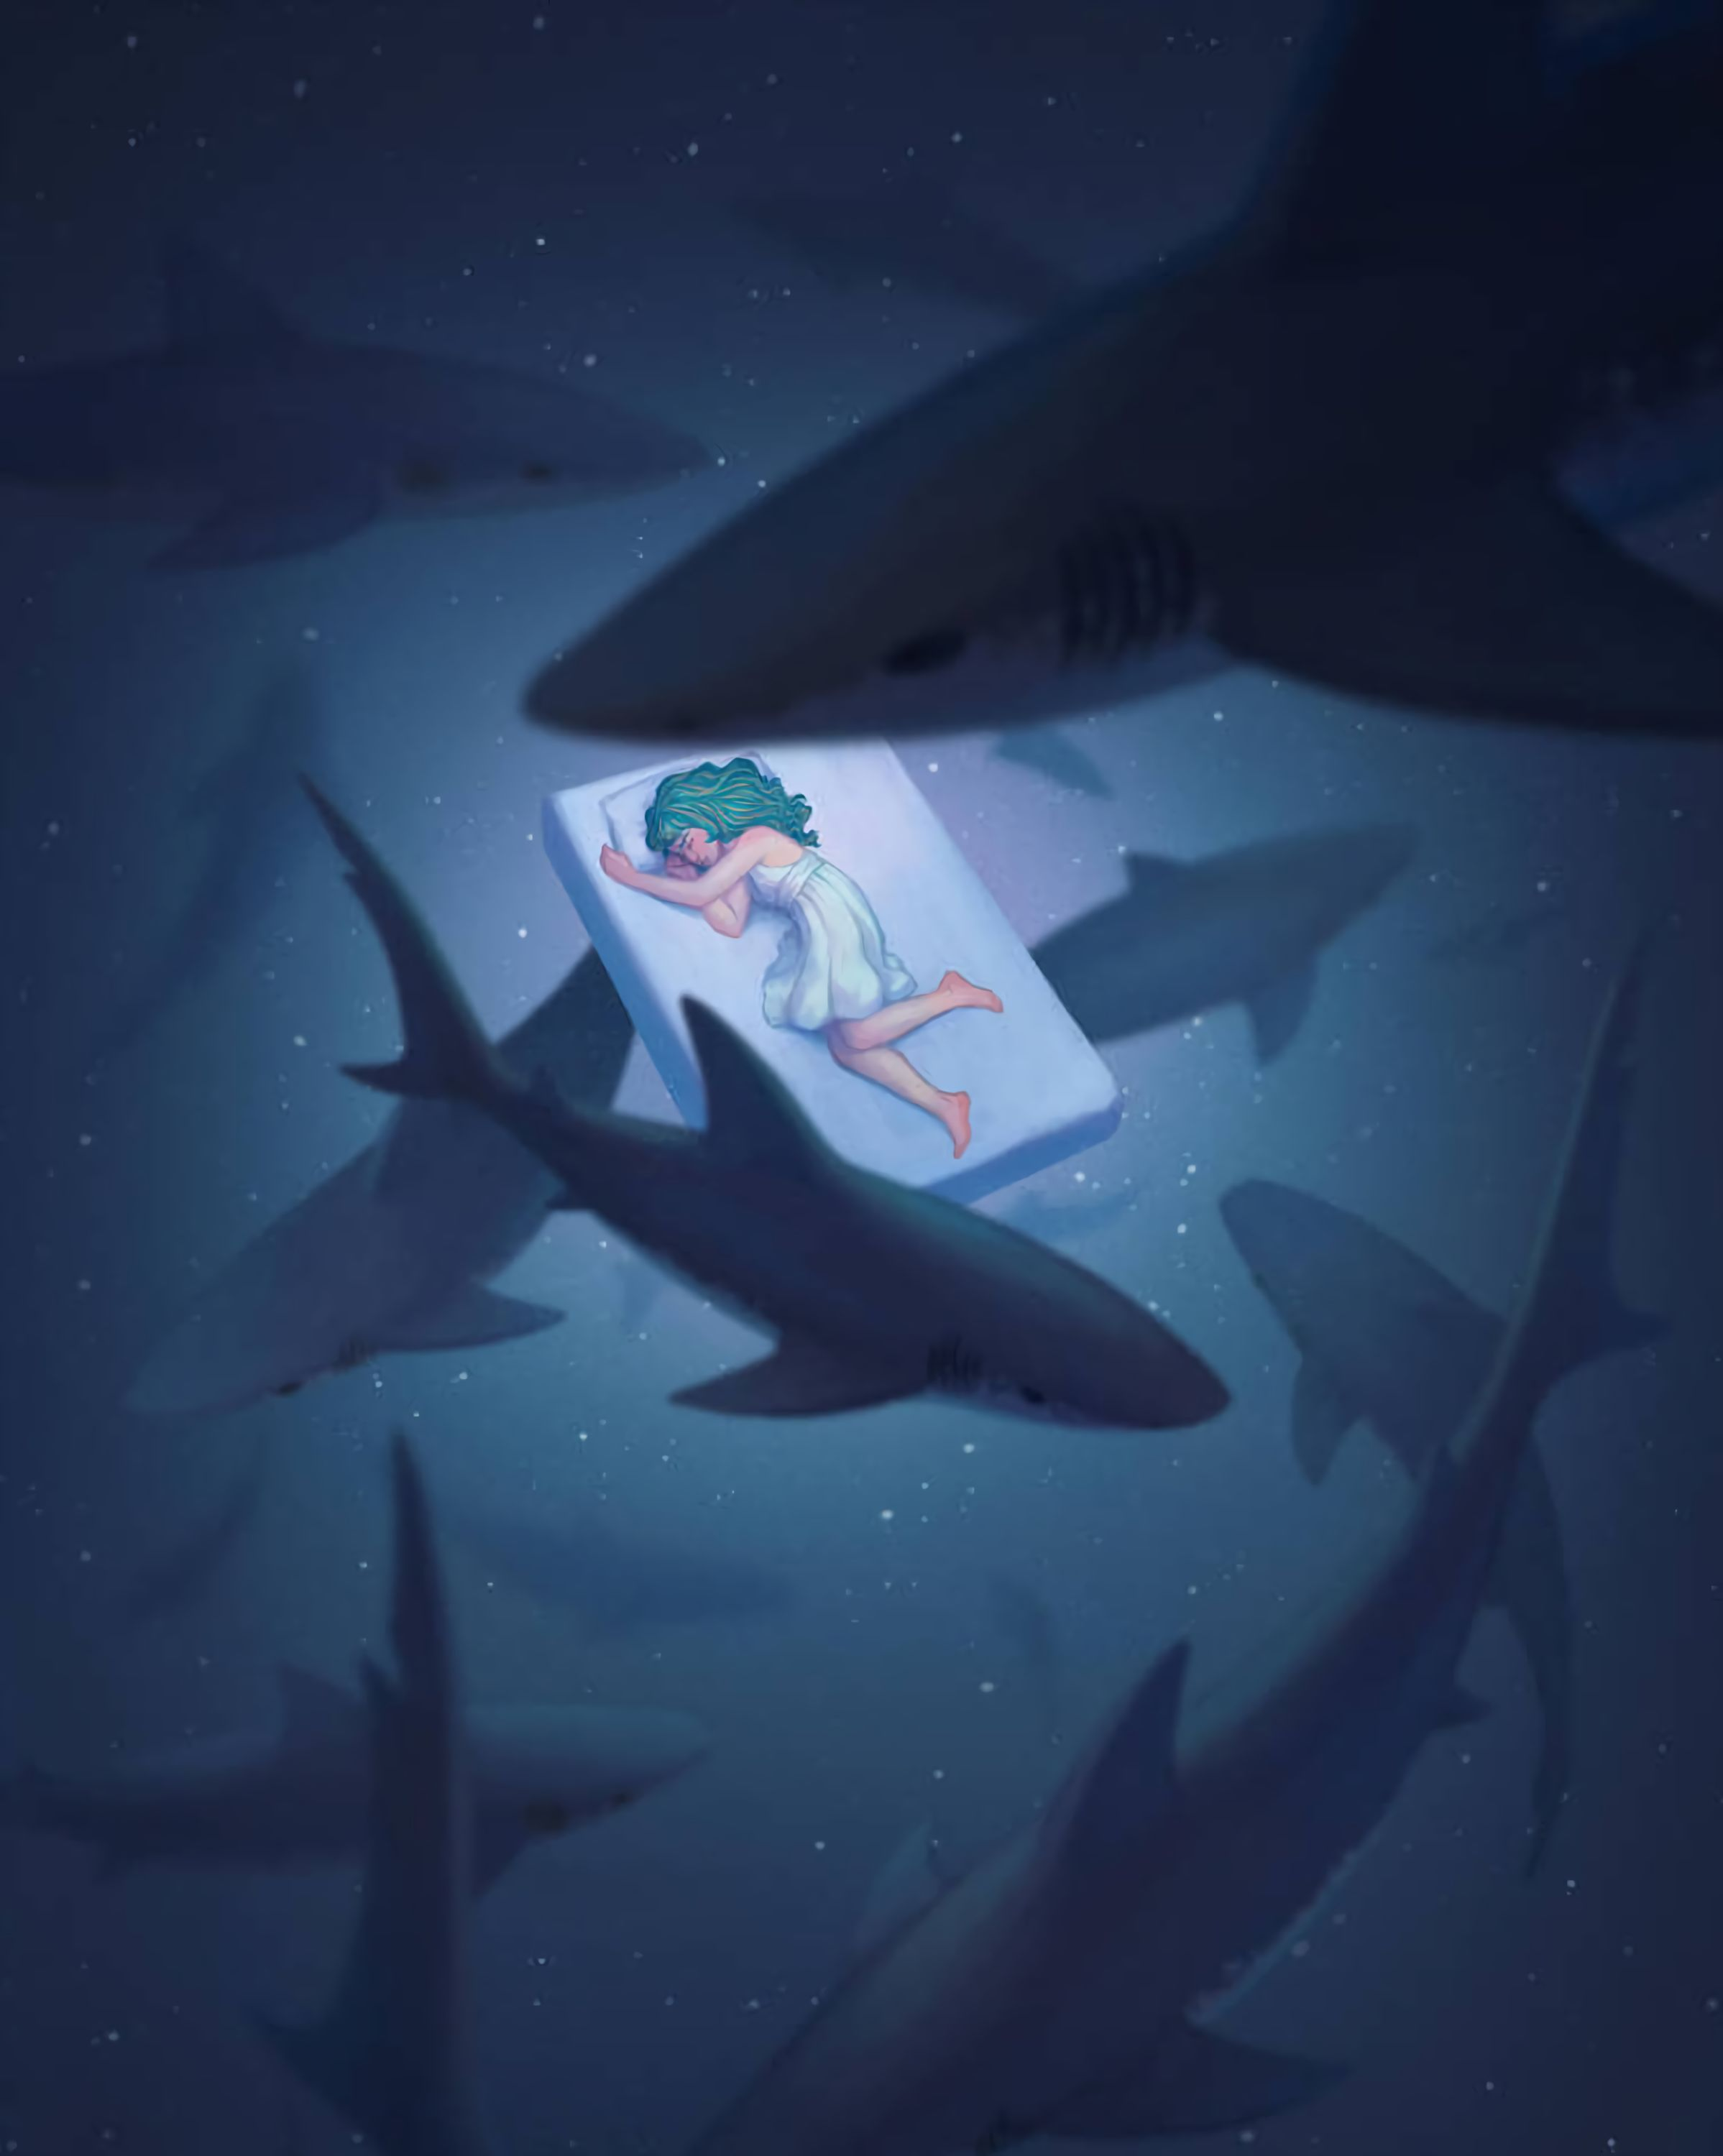 128278 download wallpaper Sleep, Dream, Underwater World, Girl, Art, Sharks screensavers and pictures for free